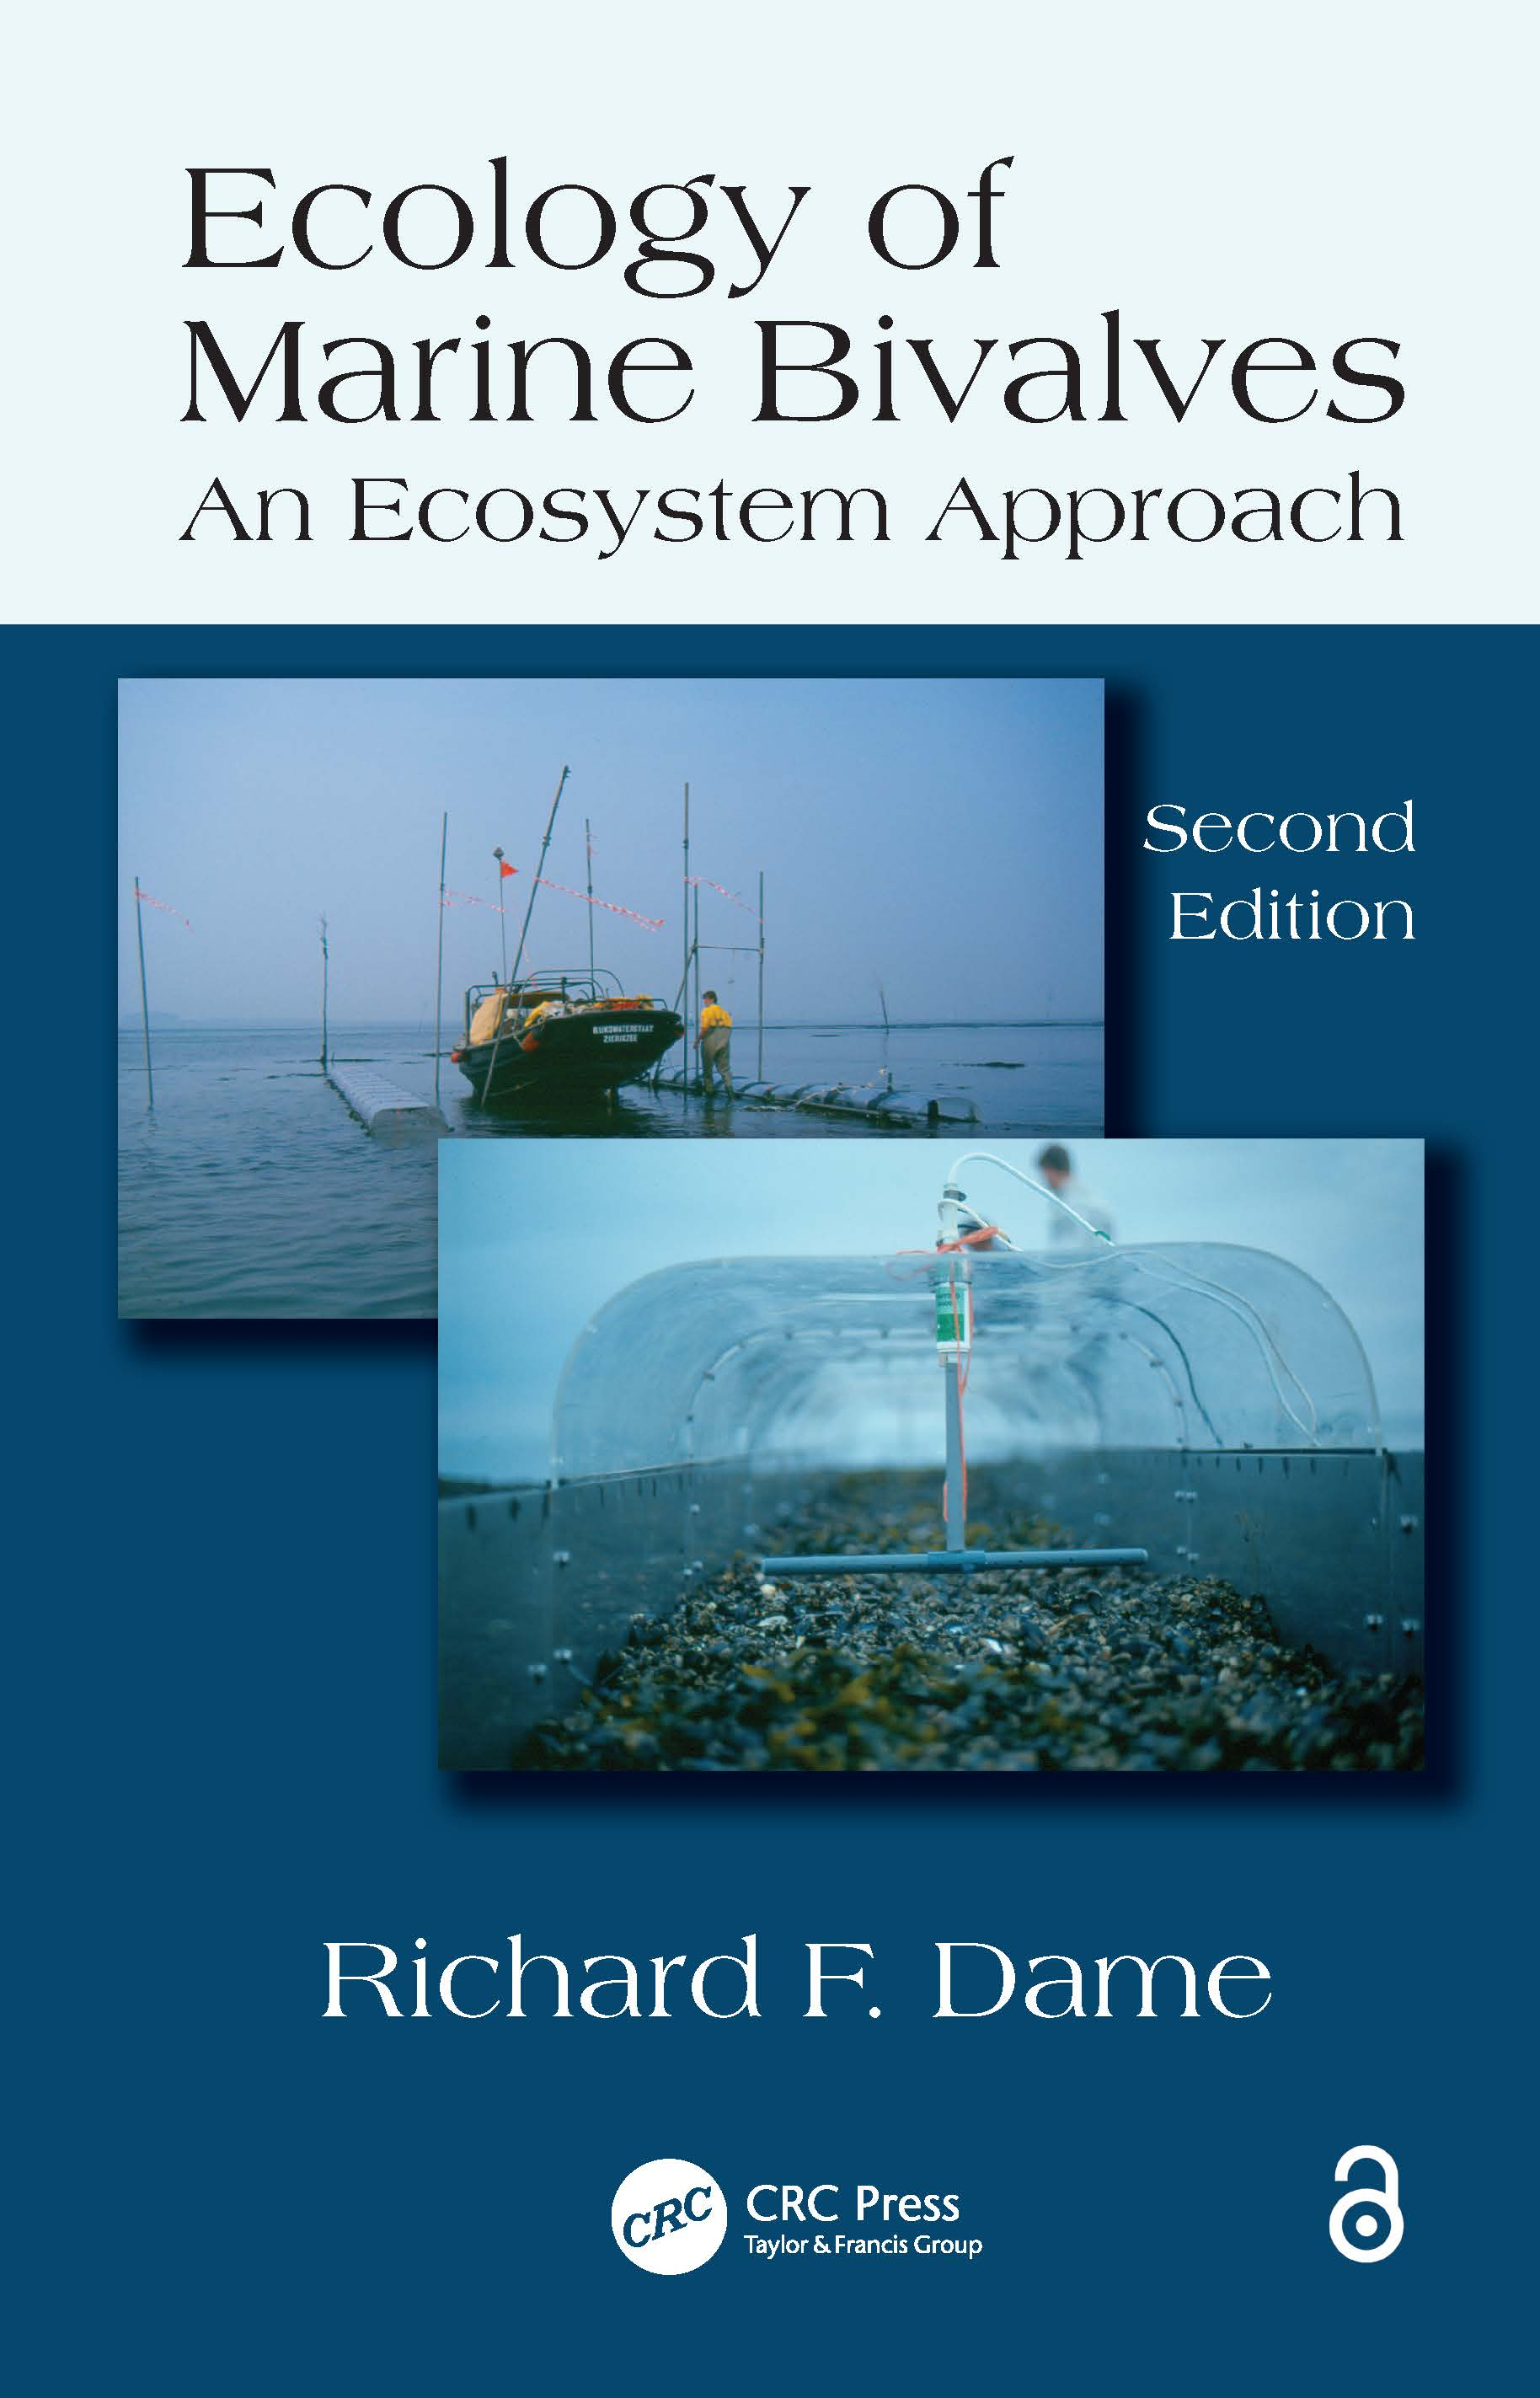 Ecology of Marine Bivalves: An Ecosystem Approach, Second Edition book cover